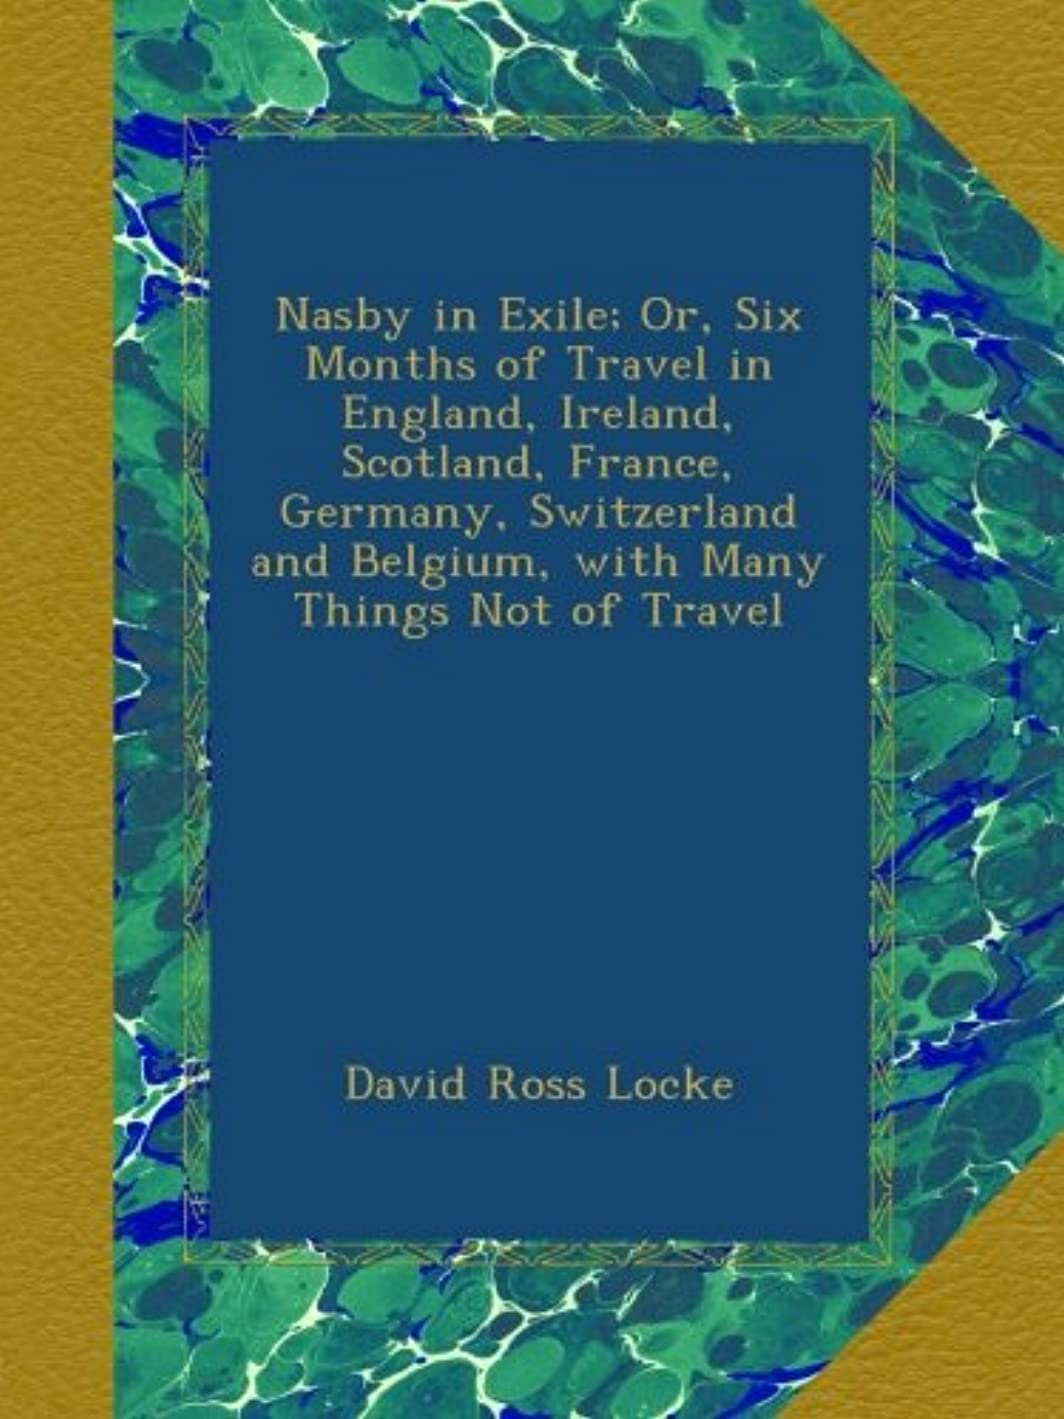 Nasby in Exile; Or, Six Months of Travel in England, Ireland, Scotland, France, Germany, Switzerland and Belgium, with Many Things Not of Travel